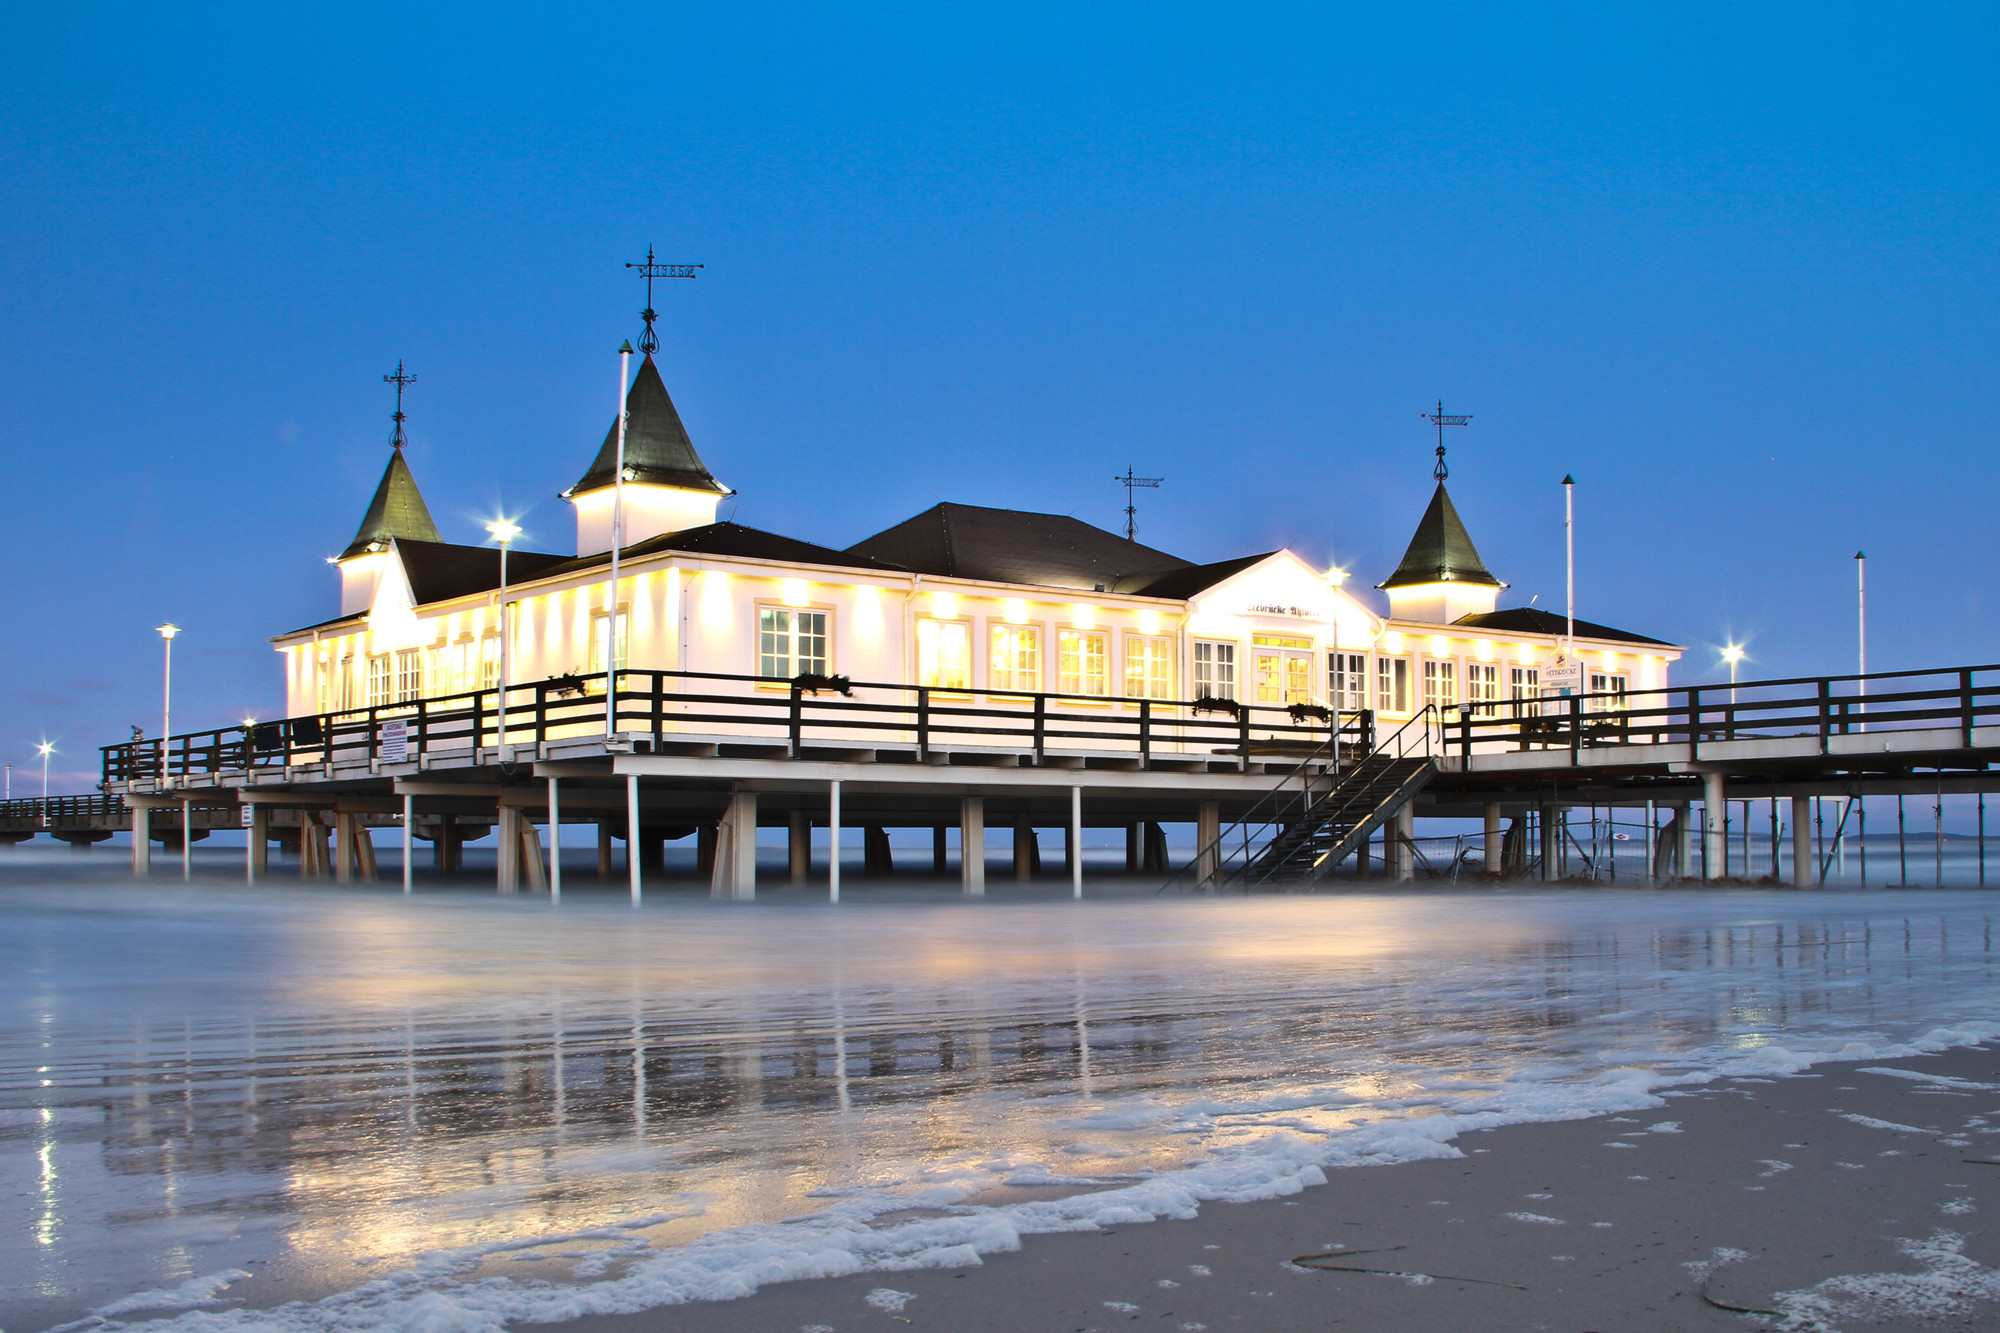 Traditionelles Usedom